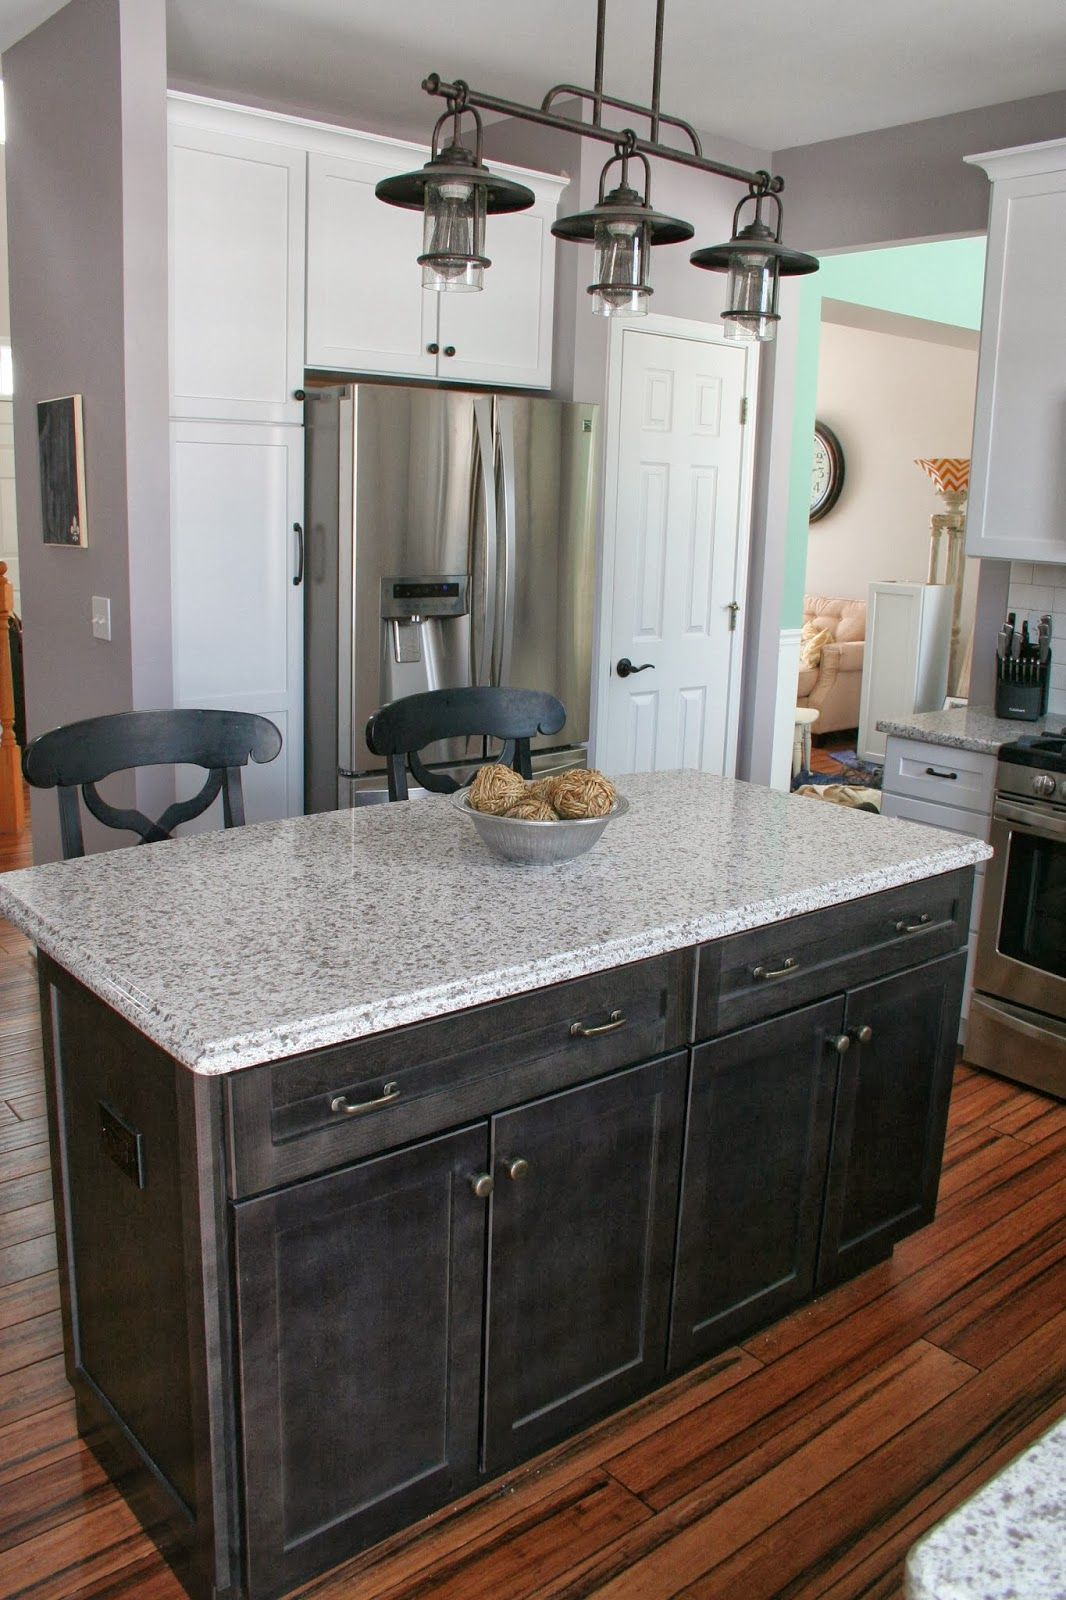 Sherwin-williams Countertop Paint Sherwin Williams Fashionable Gray Pretty Distressed Paint